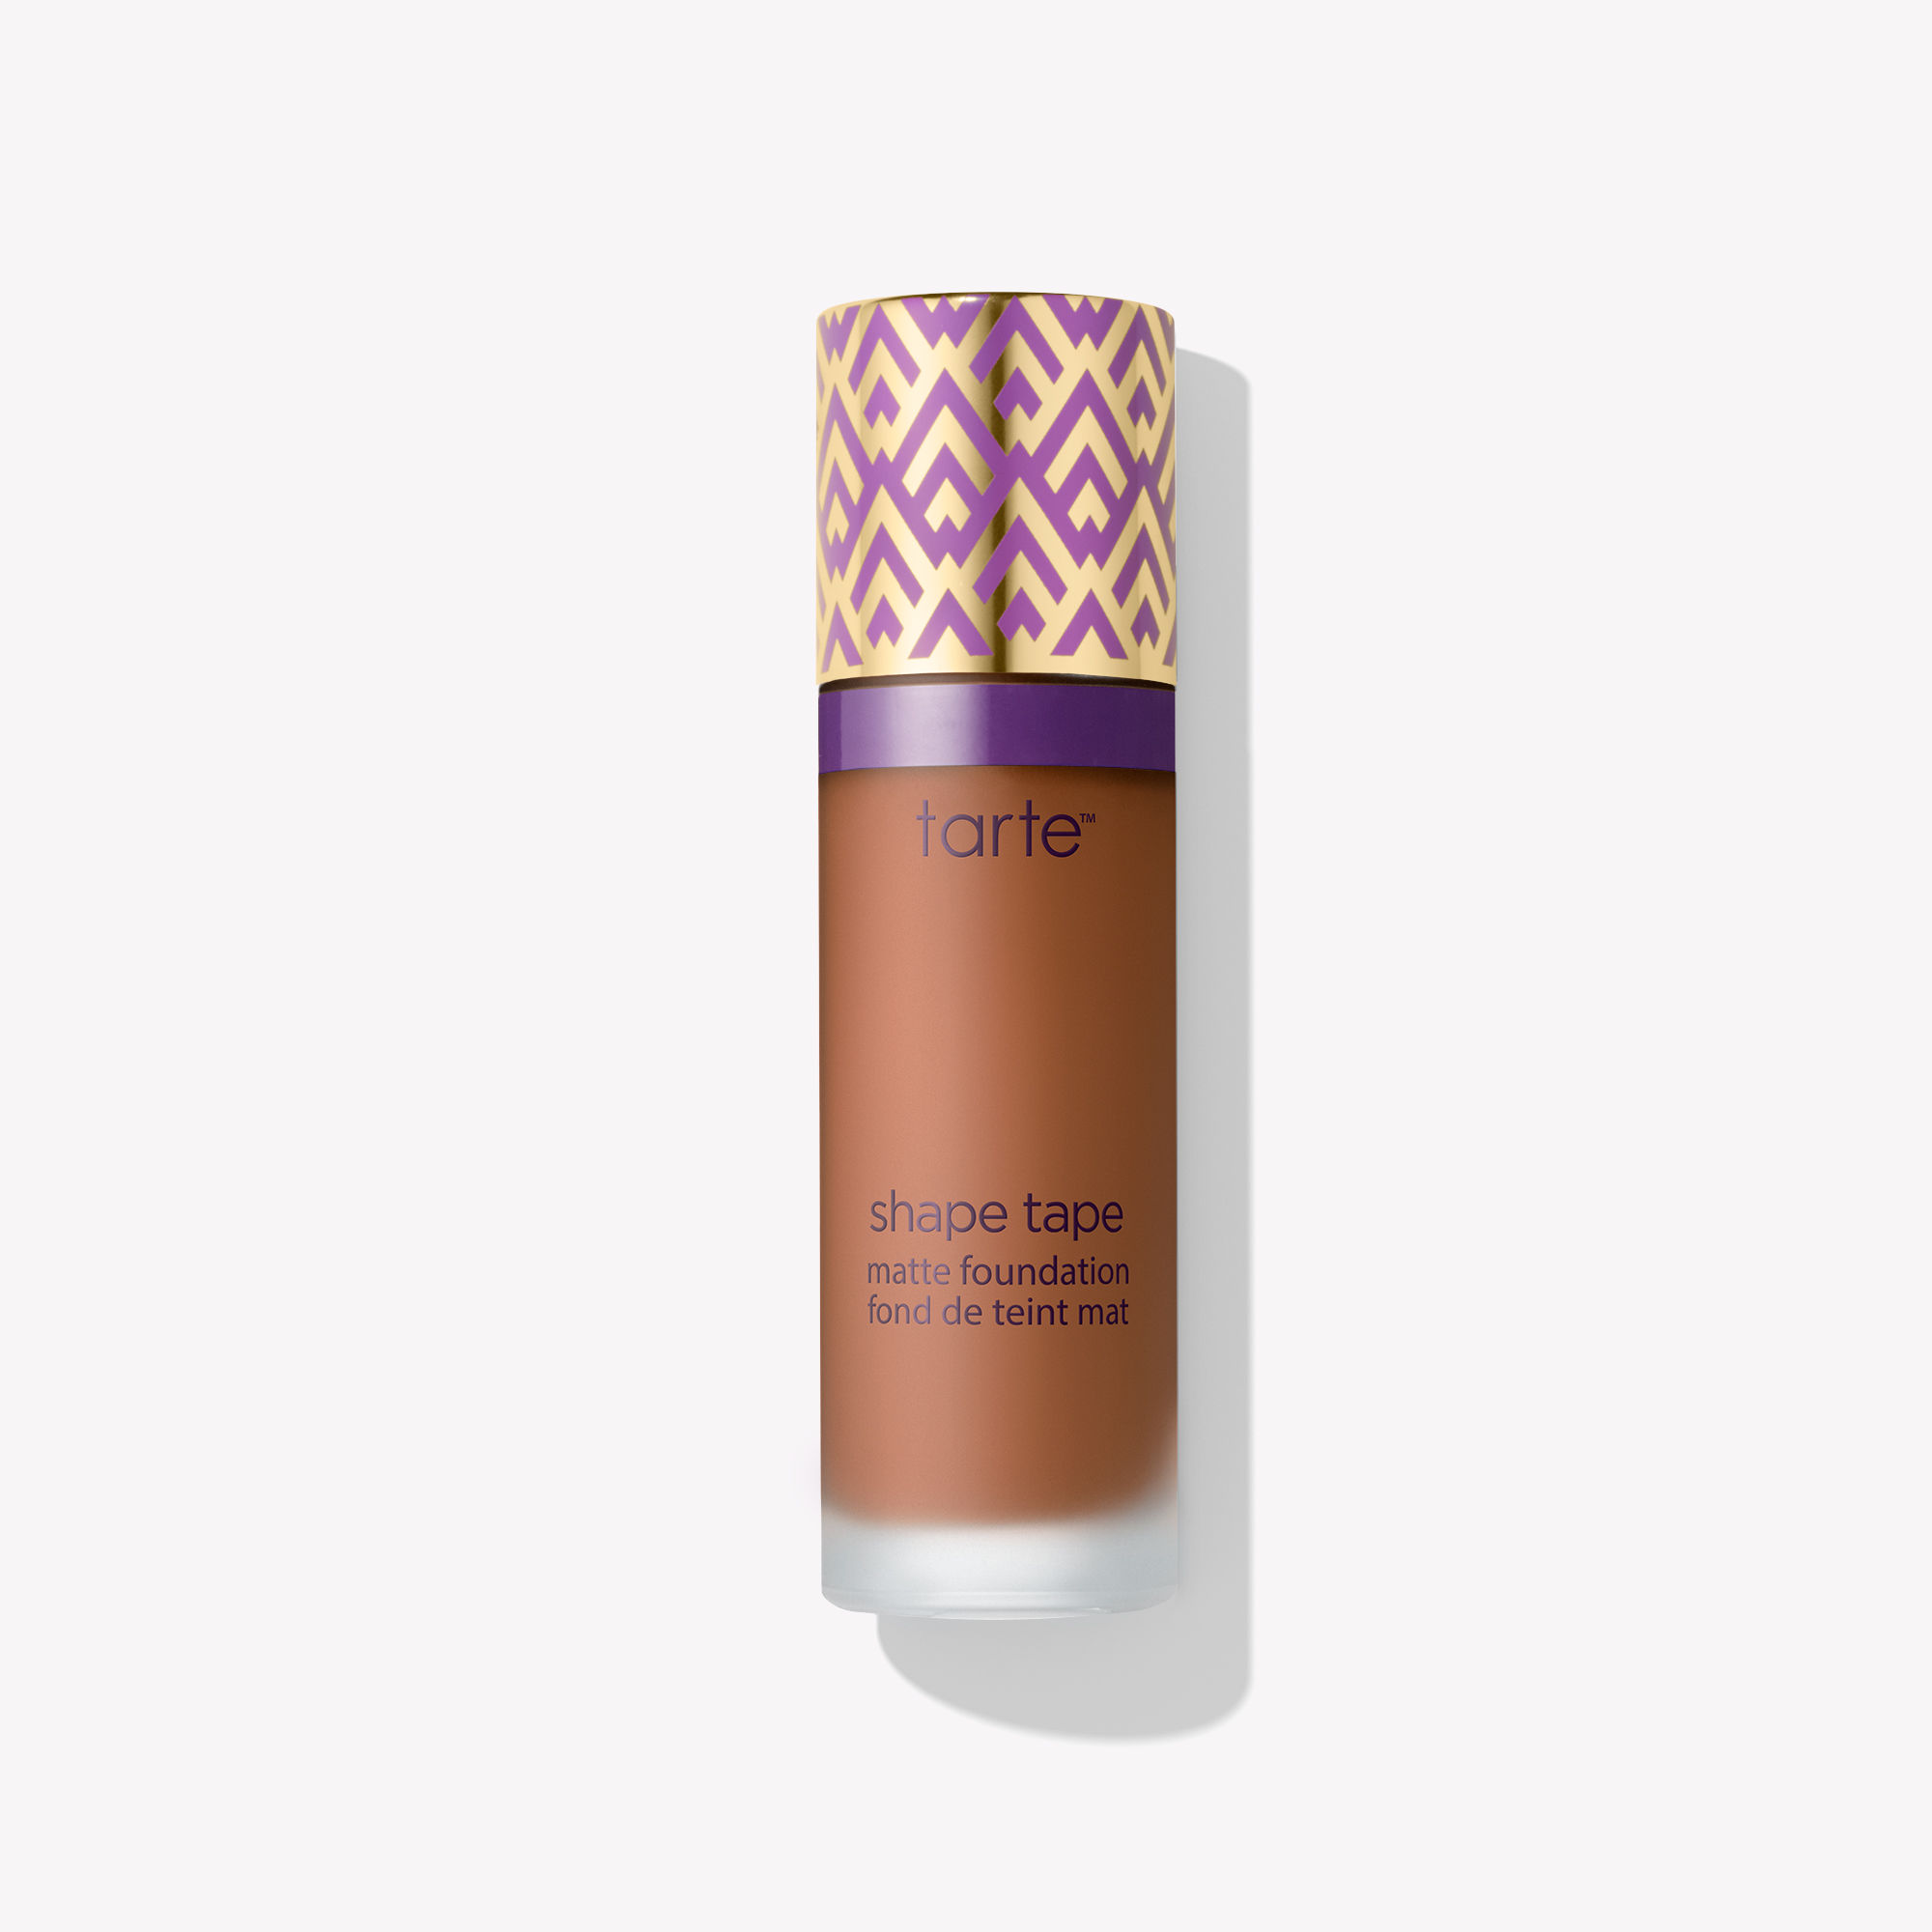 tarte™ shape tape matte foundation